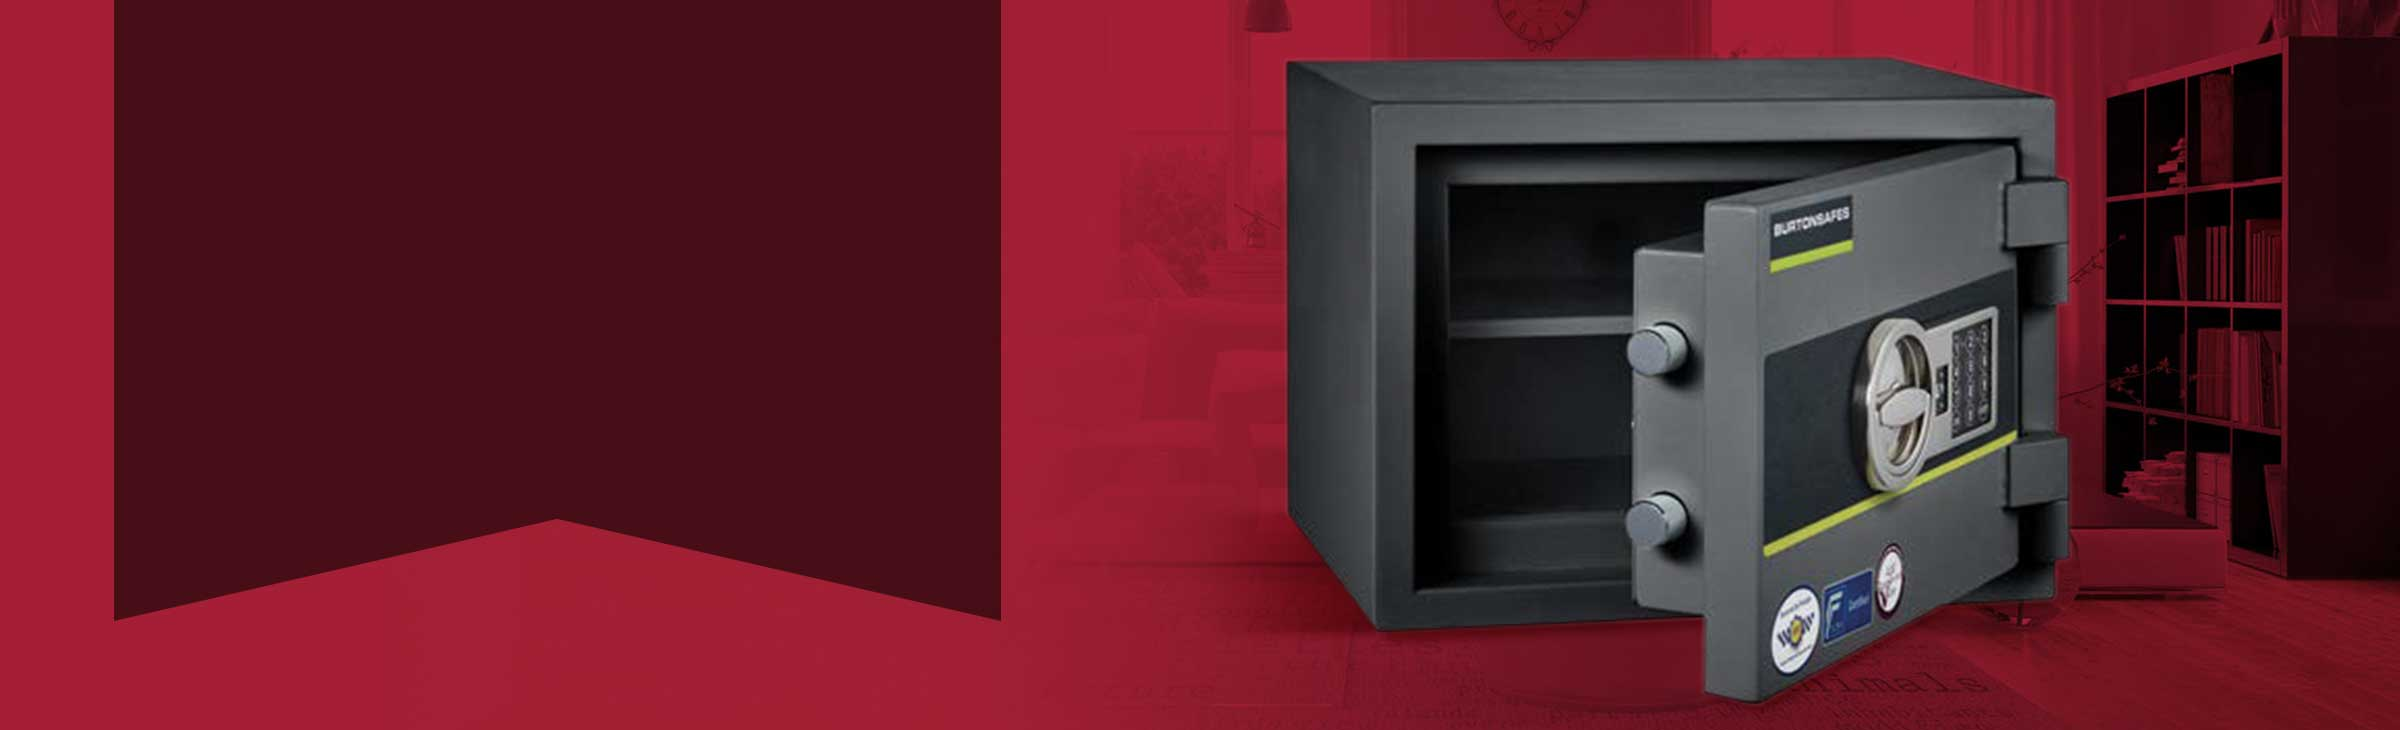 Home Safes to protect your valuables